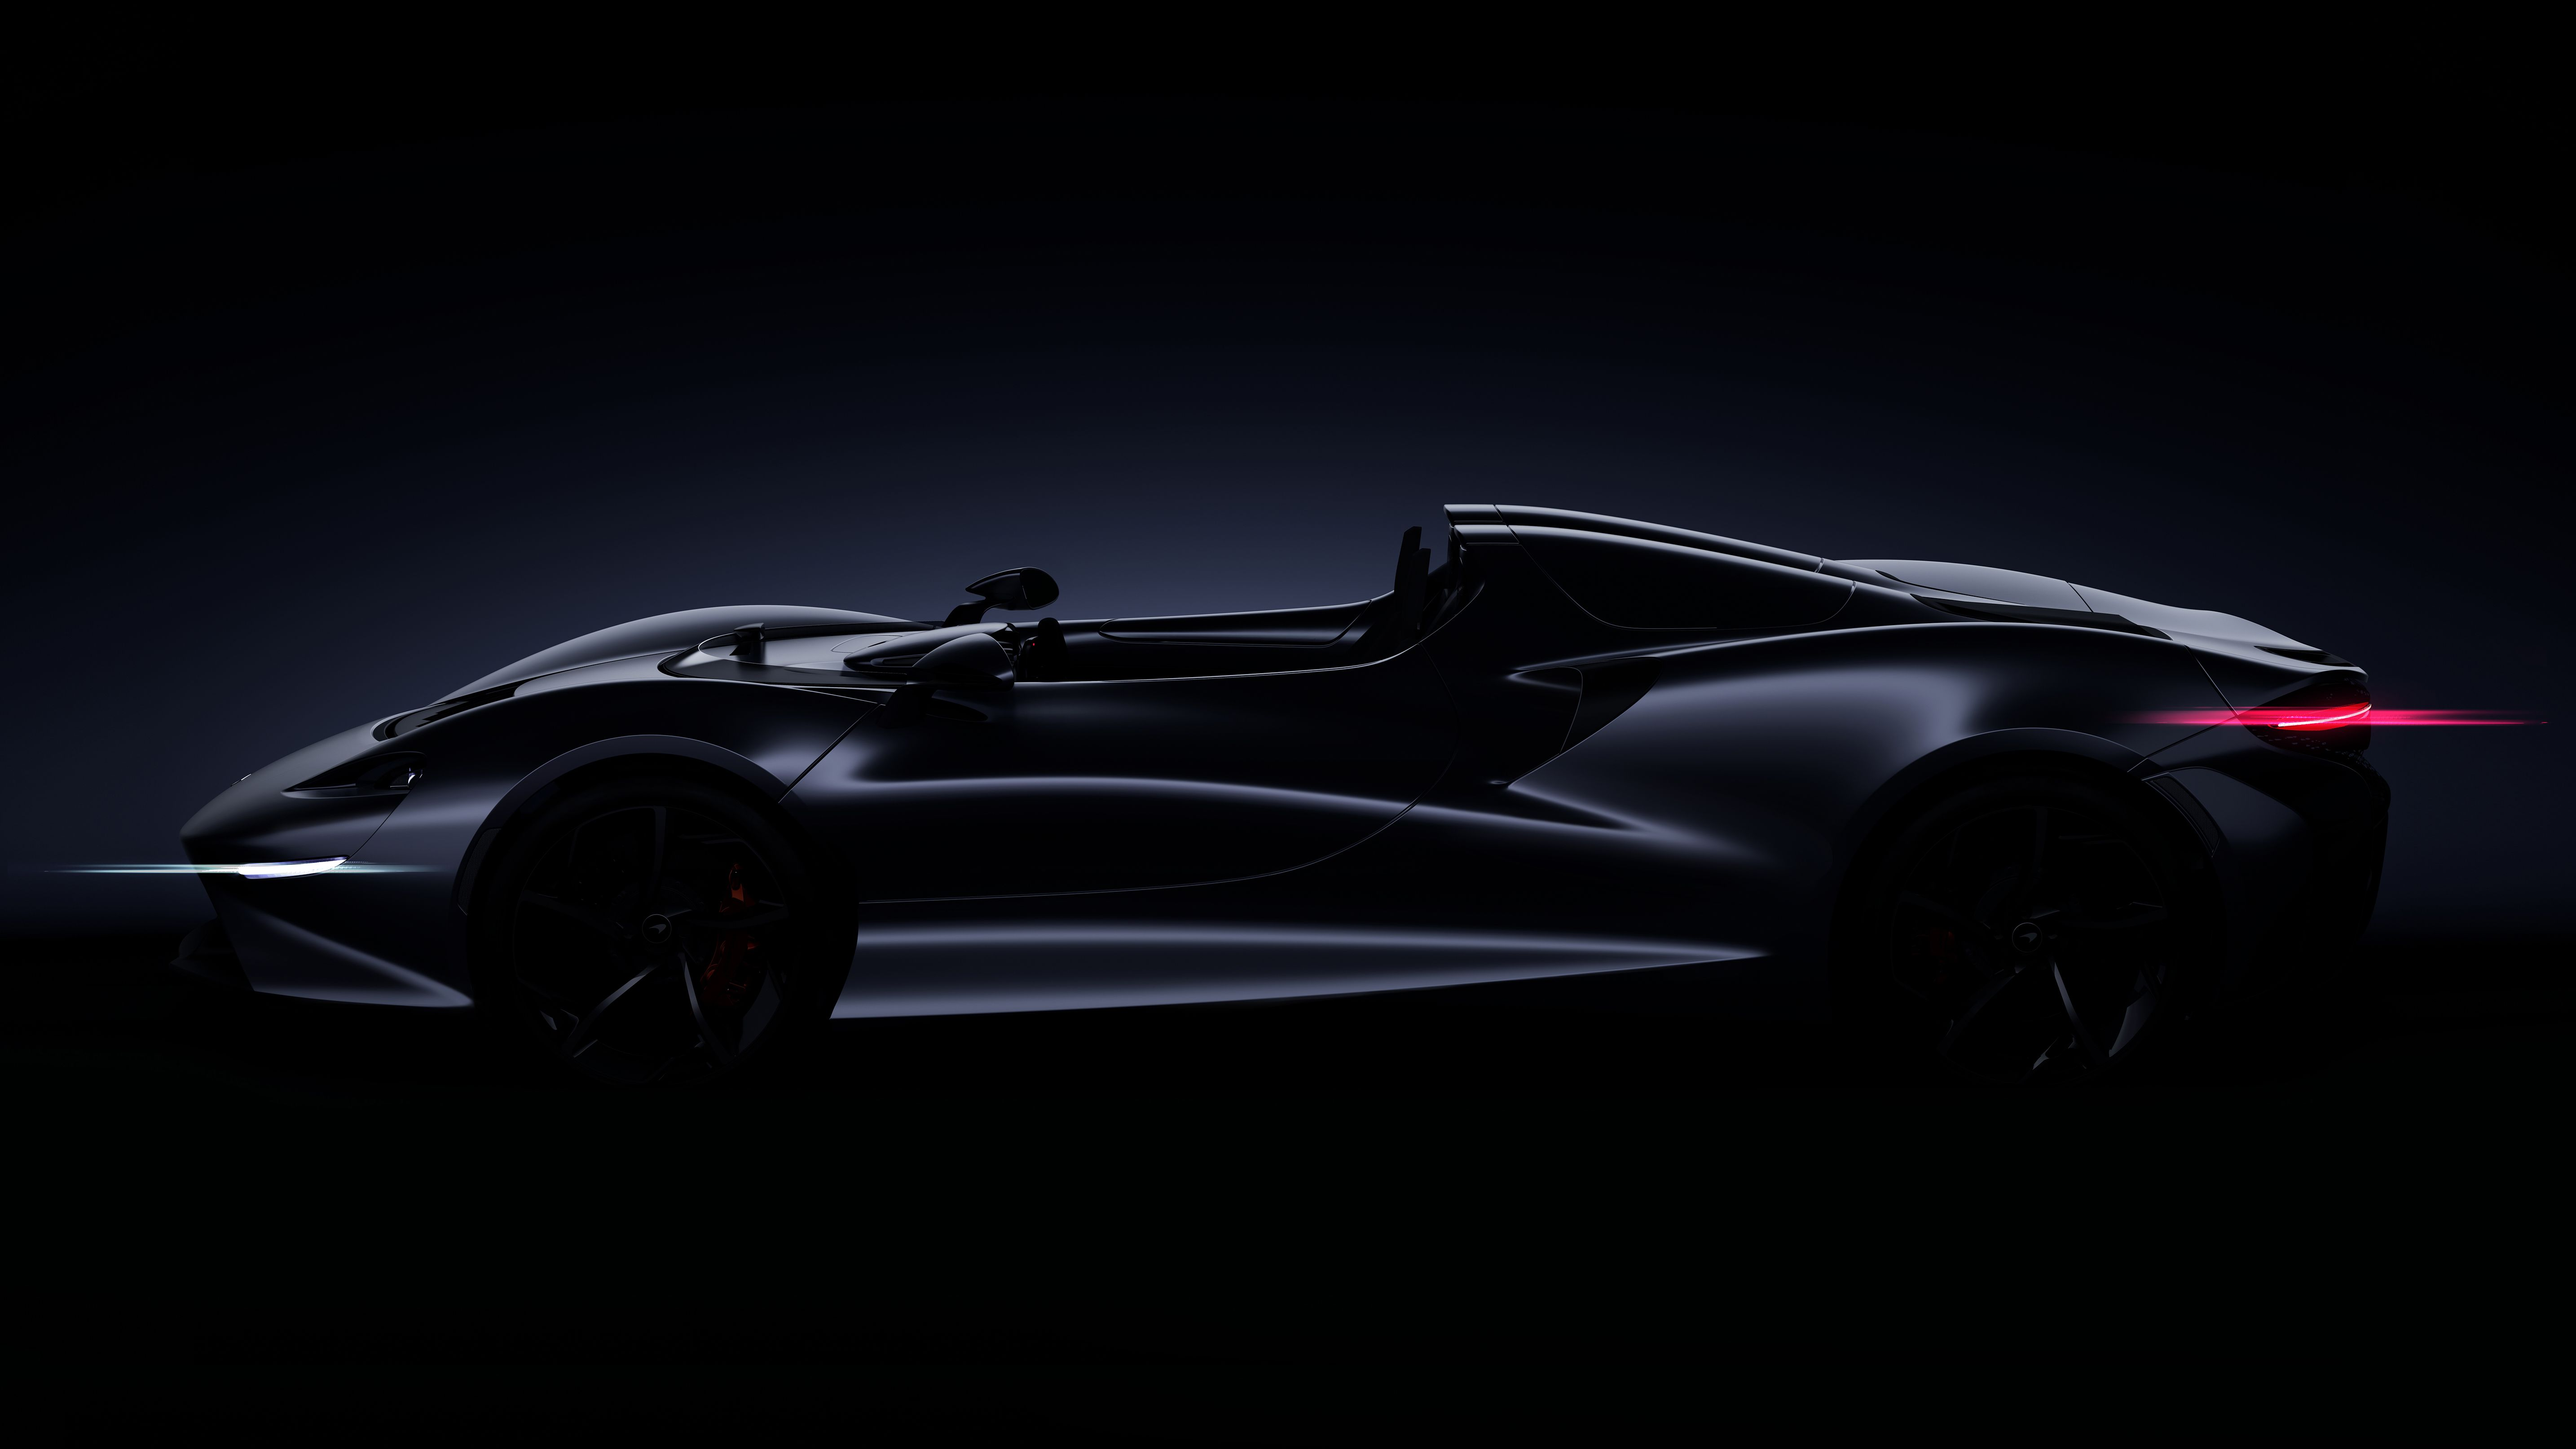 McLaren Will Build a Roadster That Appears to Have No Windshield